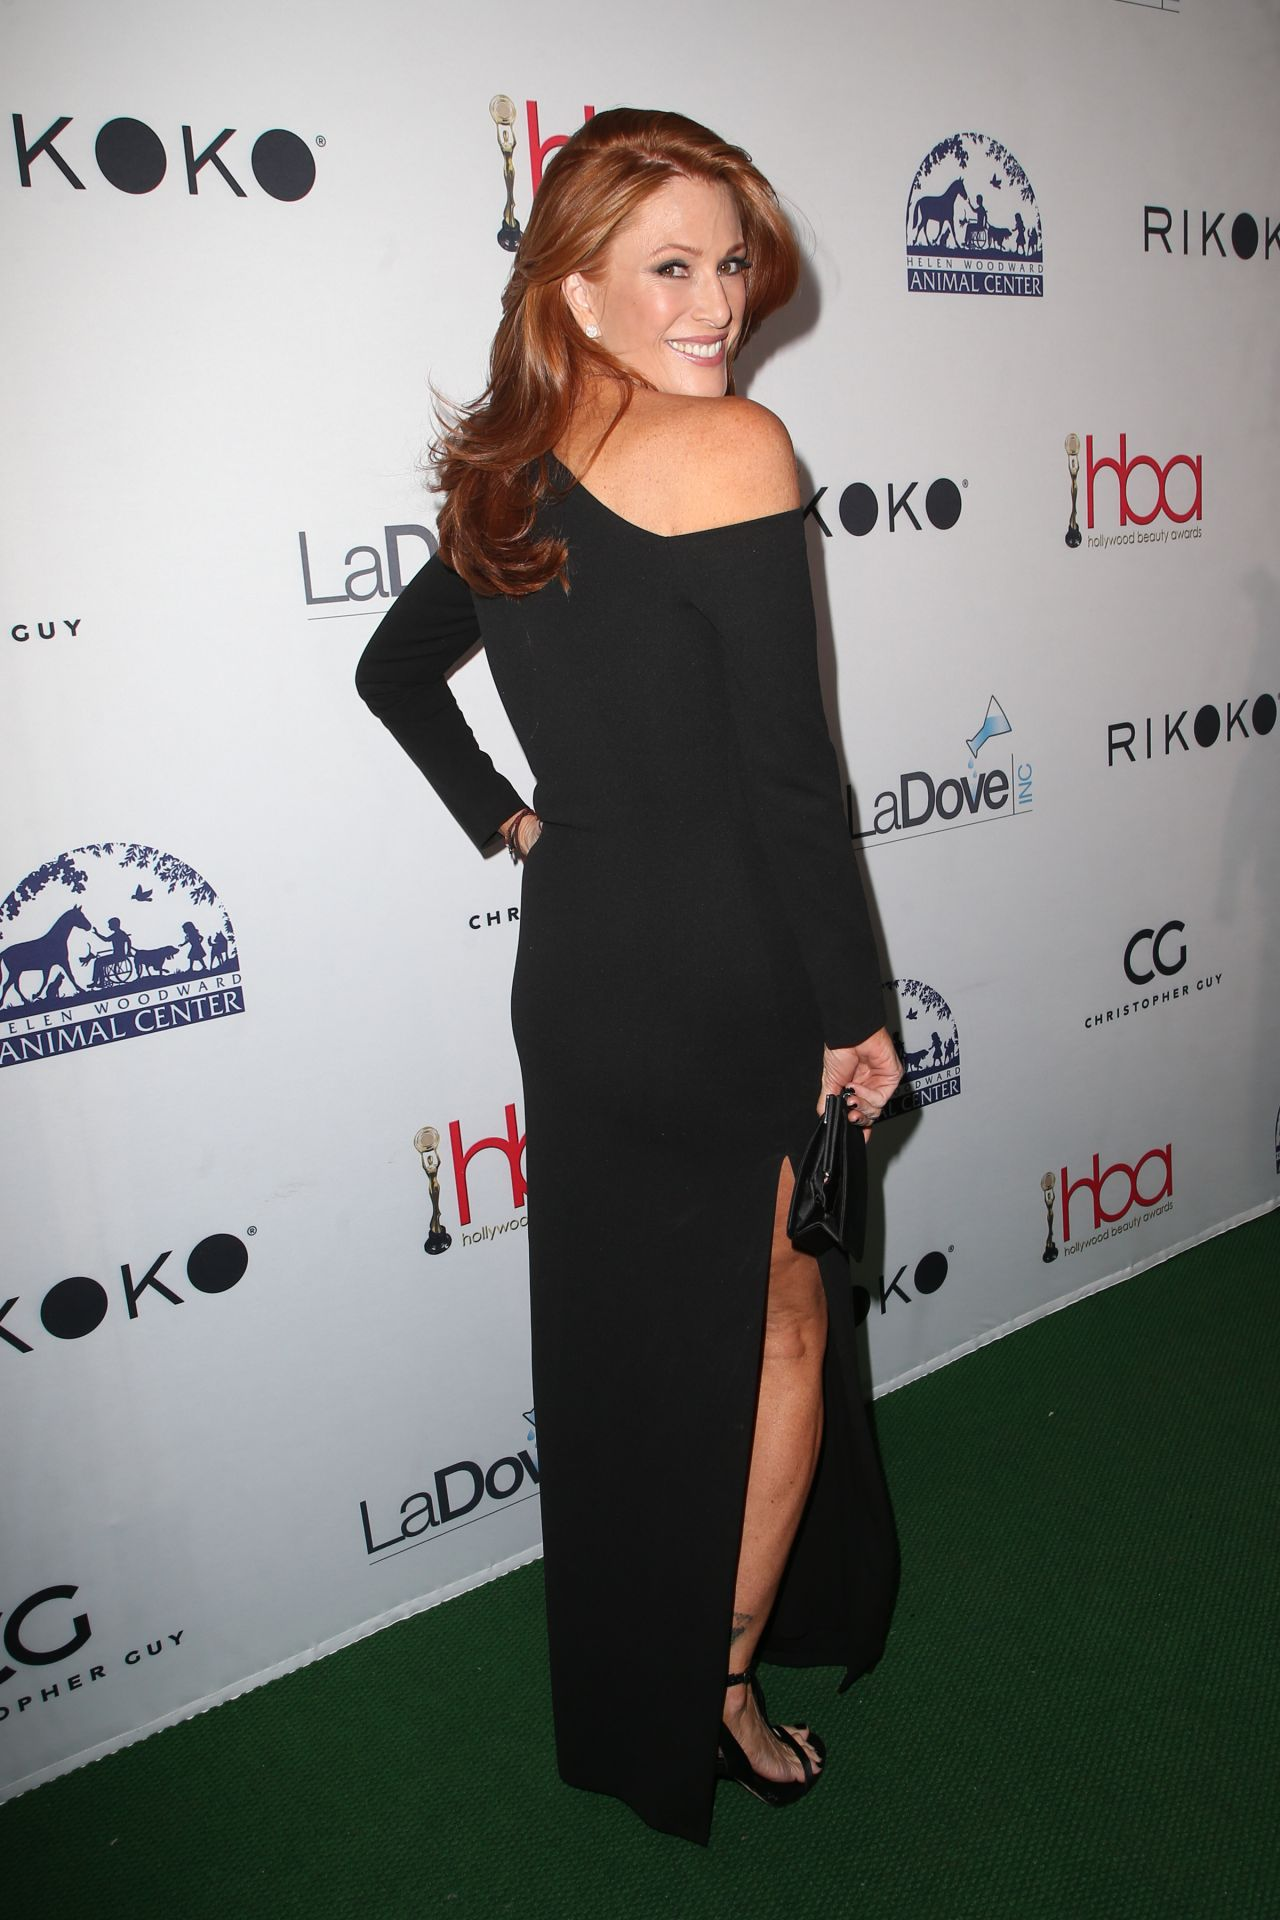 https://celebmafia.com/wp-content/uploads/2018/02/angie-everhart-2018-hollywood-beauty-awards-in-la-3.jpg